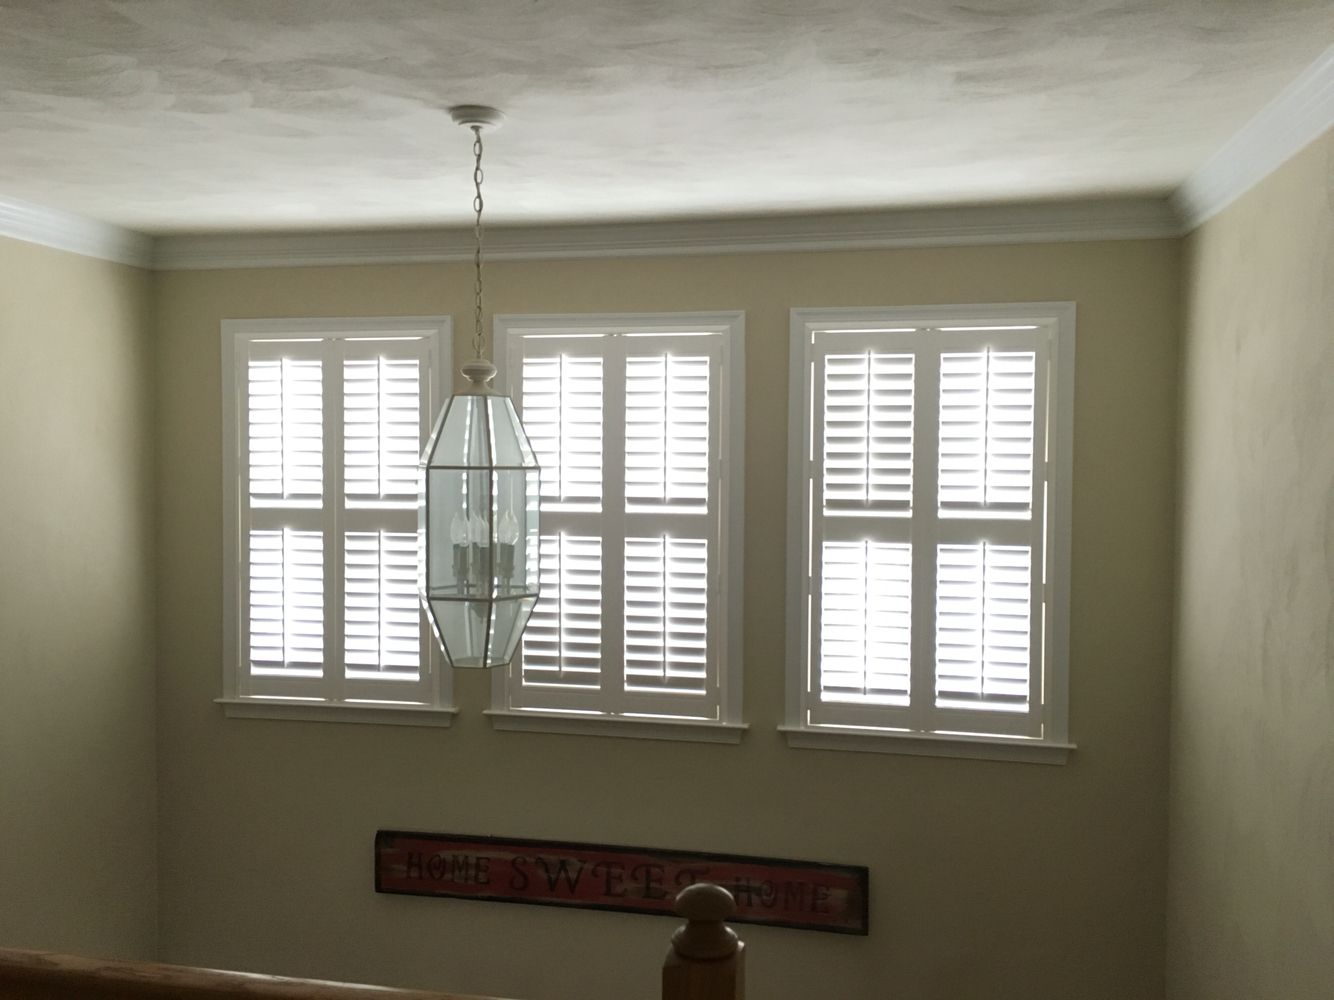 Plantation Shutters Eclipse 3 1 2 Inch Louver Standard Tilt Bar Z Frame Inside Mounted